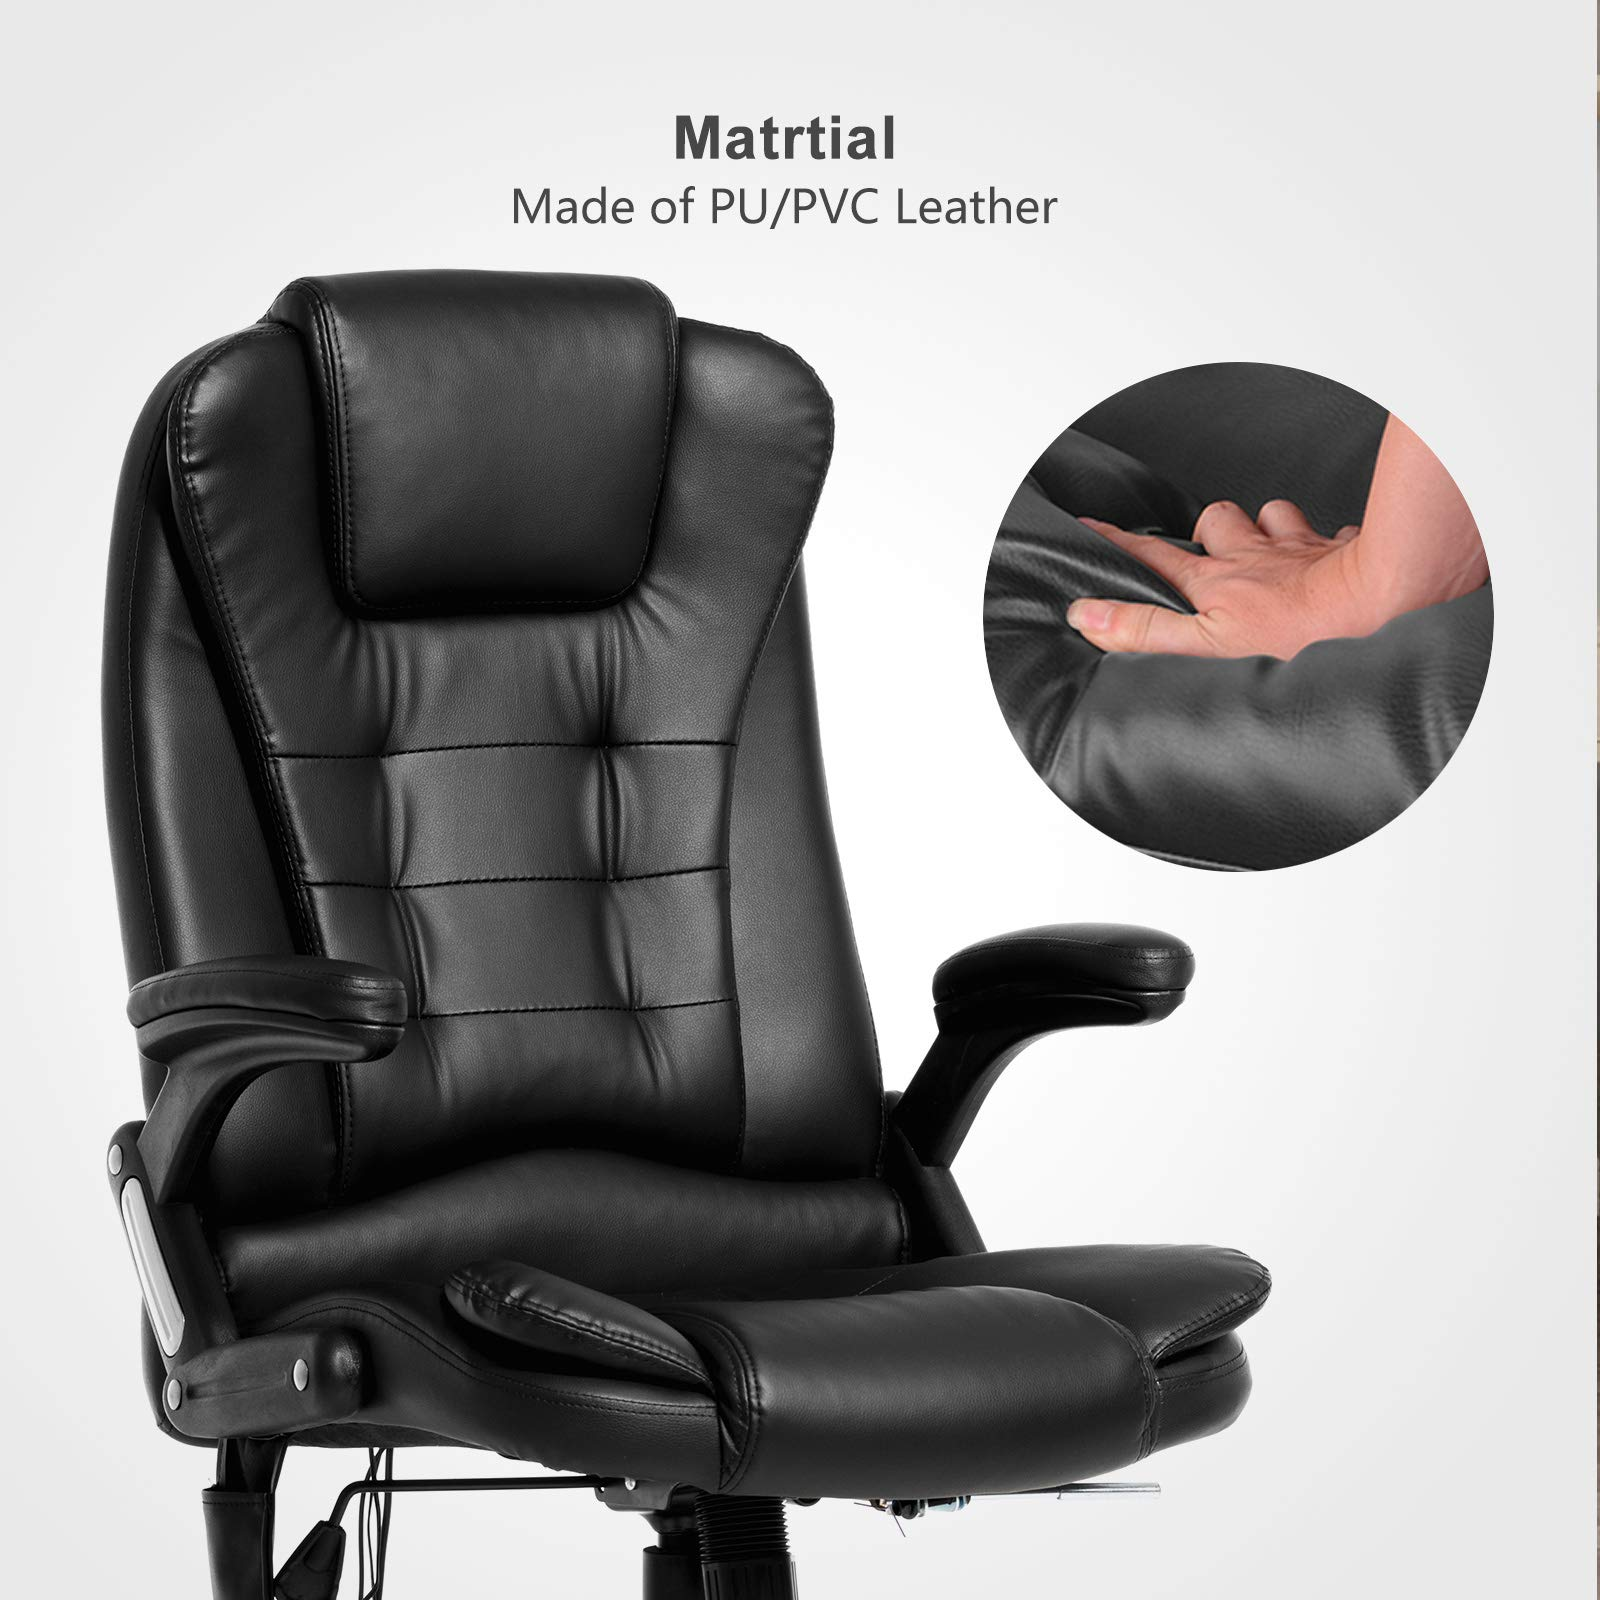 Mecor Heated Office Massage High-Back PU Leather Computer Chair w/360 Degree Adjustable Height & Armrest (Black) by Mecor (Image #2)